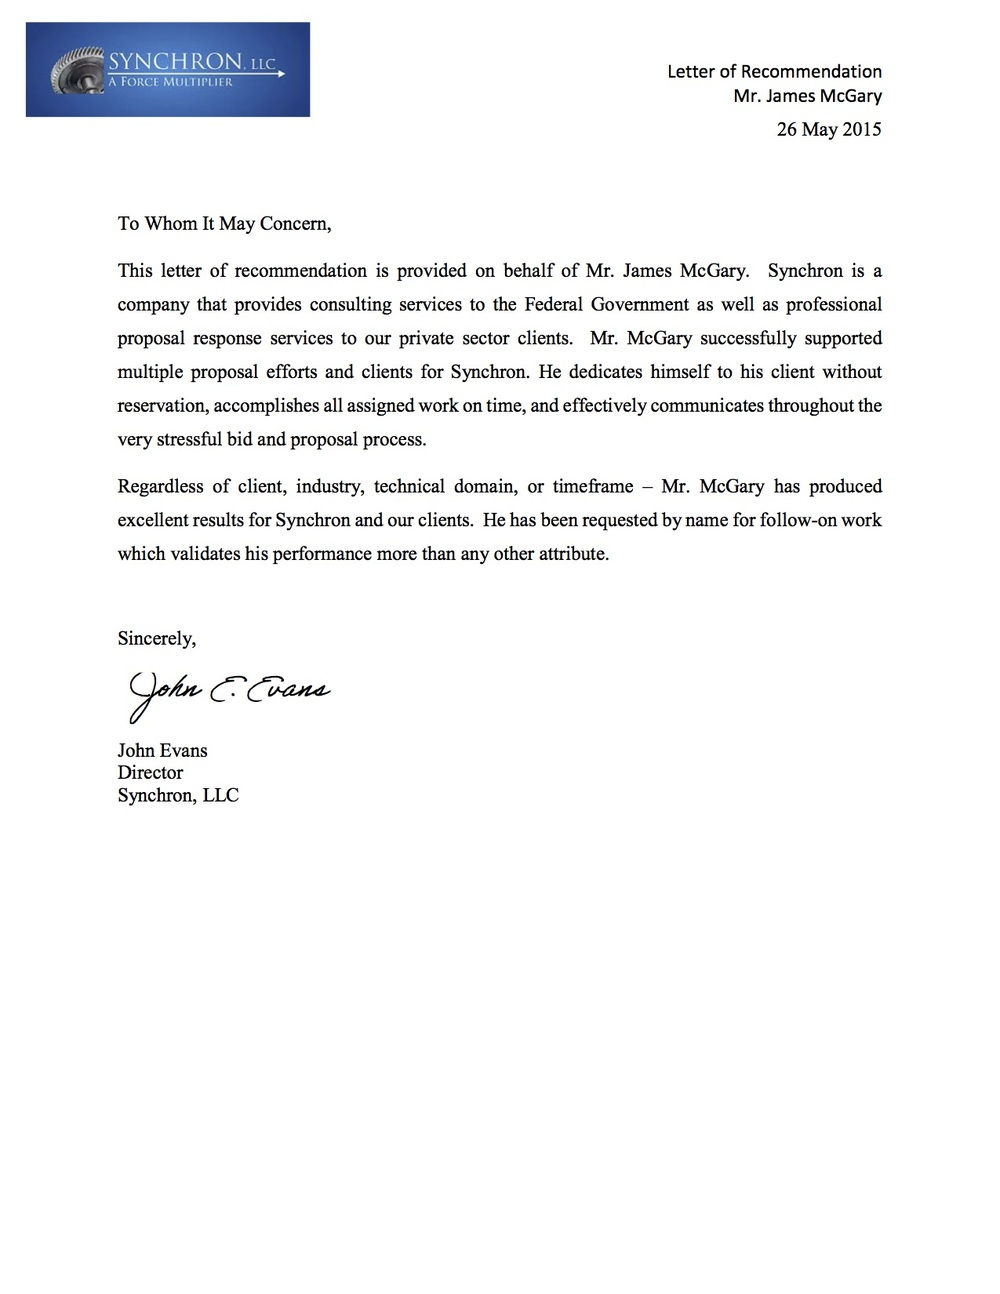 Letter of Recommendation - Mr. James McGary.jpg